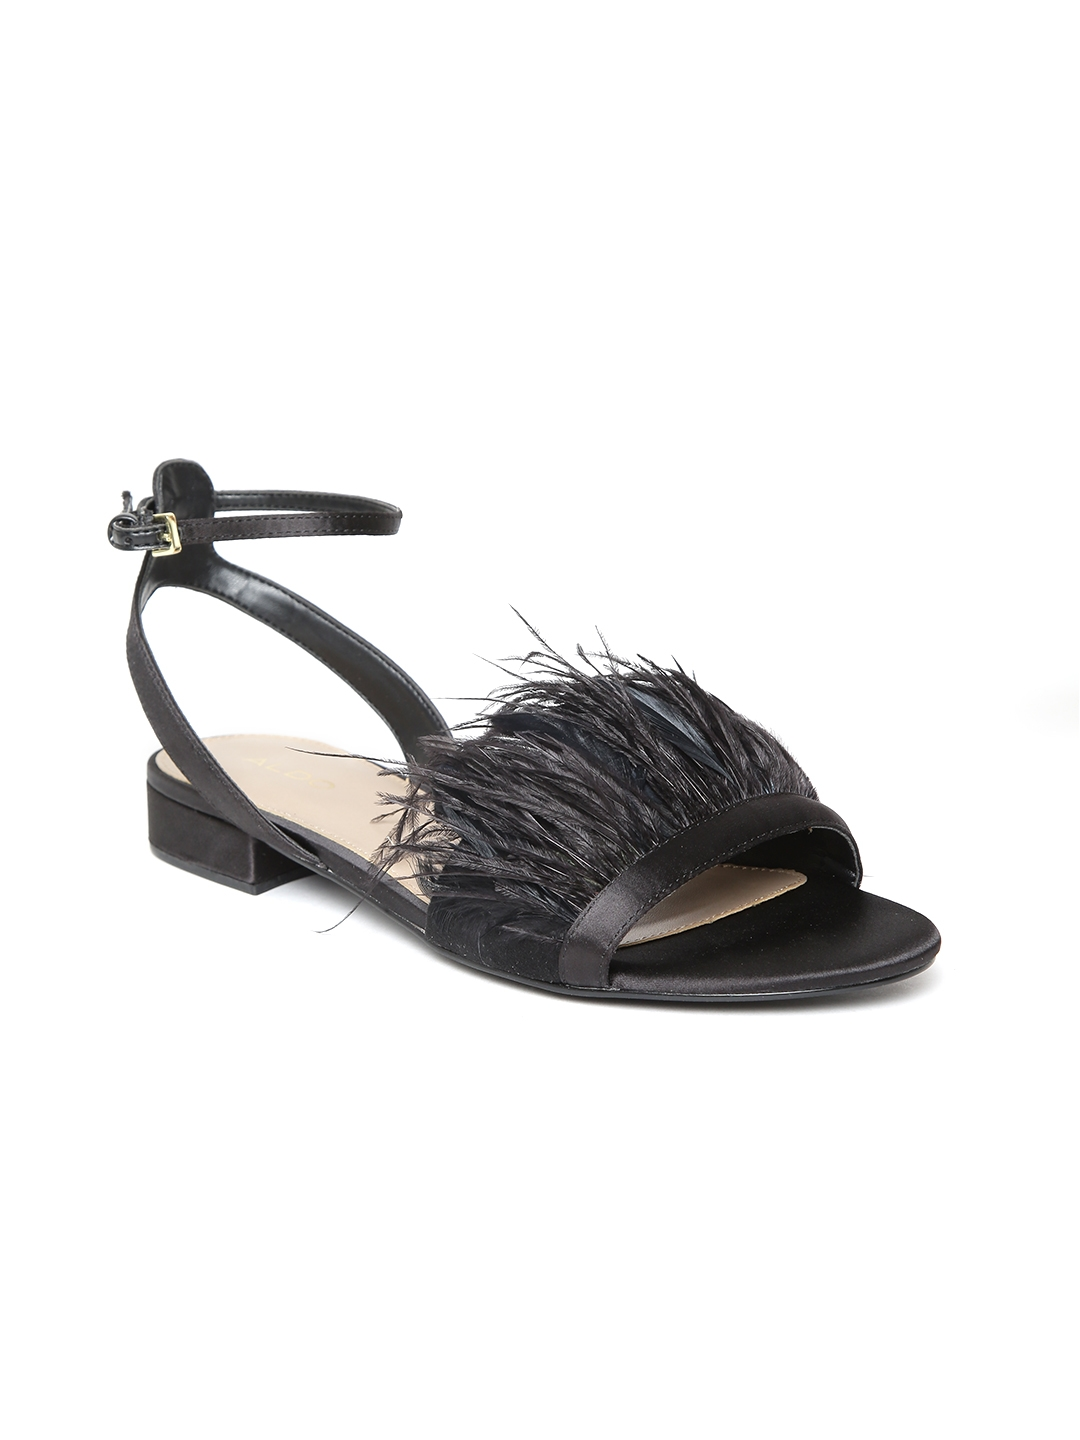 dc449d1c842 Buy ALDO Women Black Faux Feather Open Toe Flats - Flats for Women ...